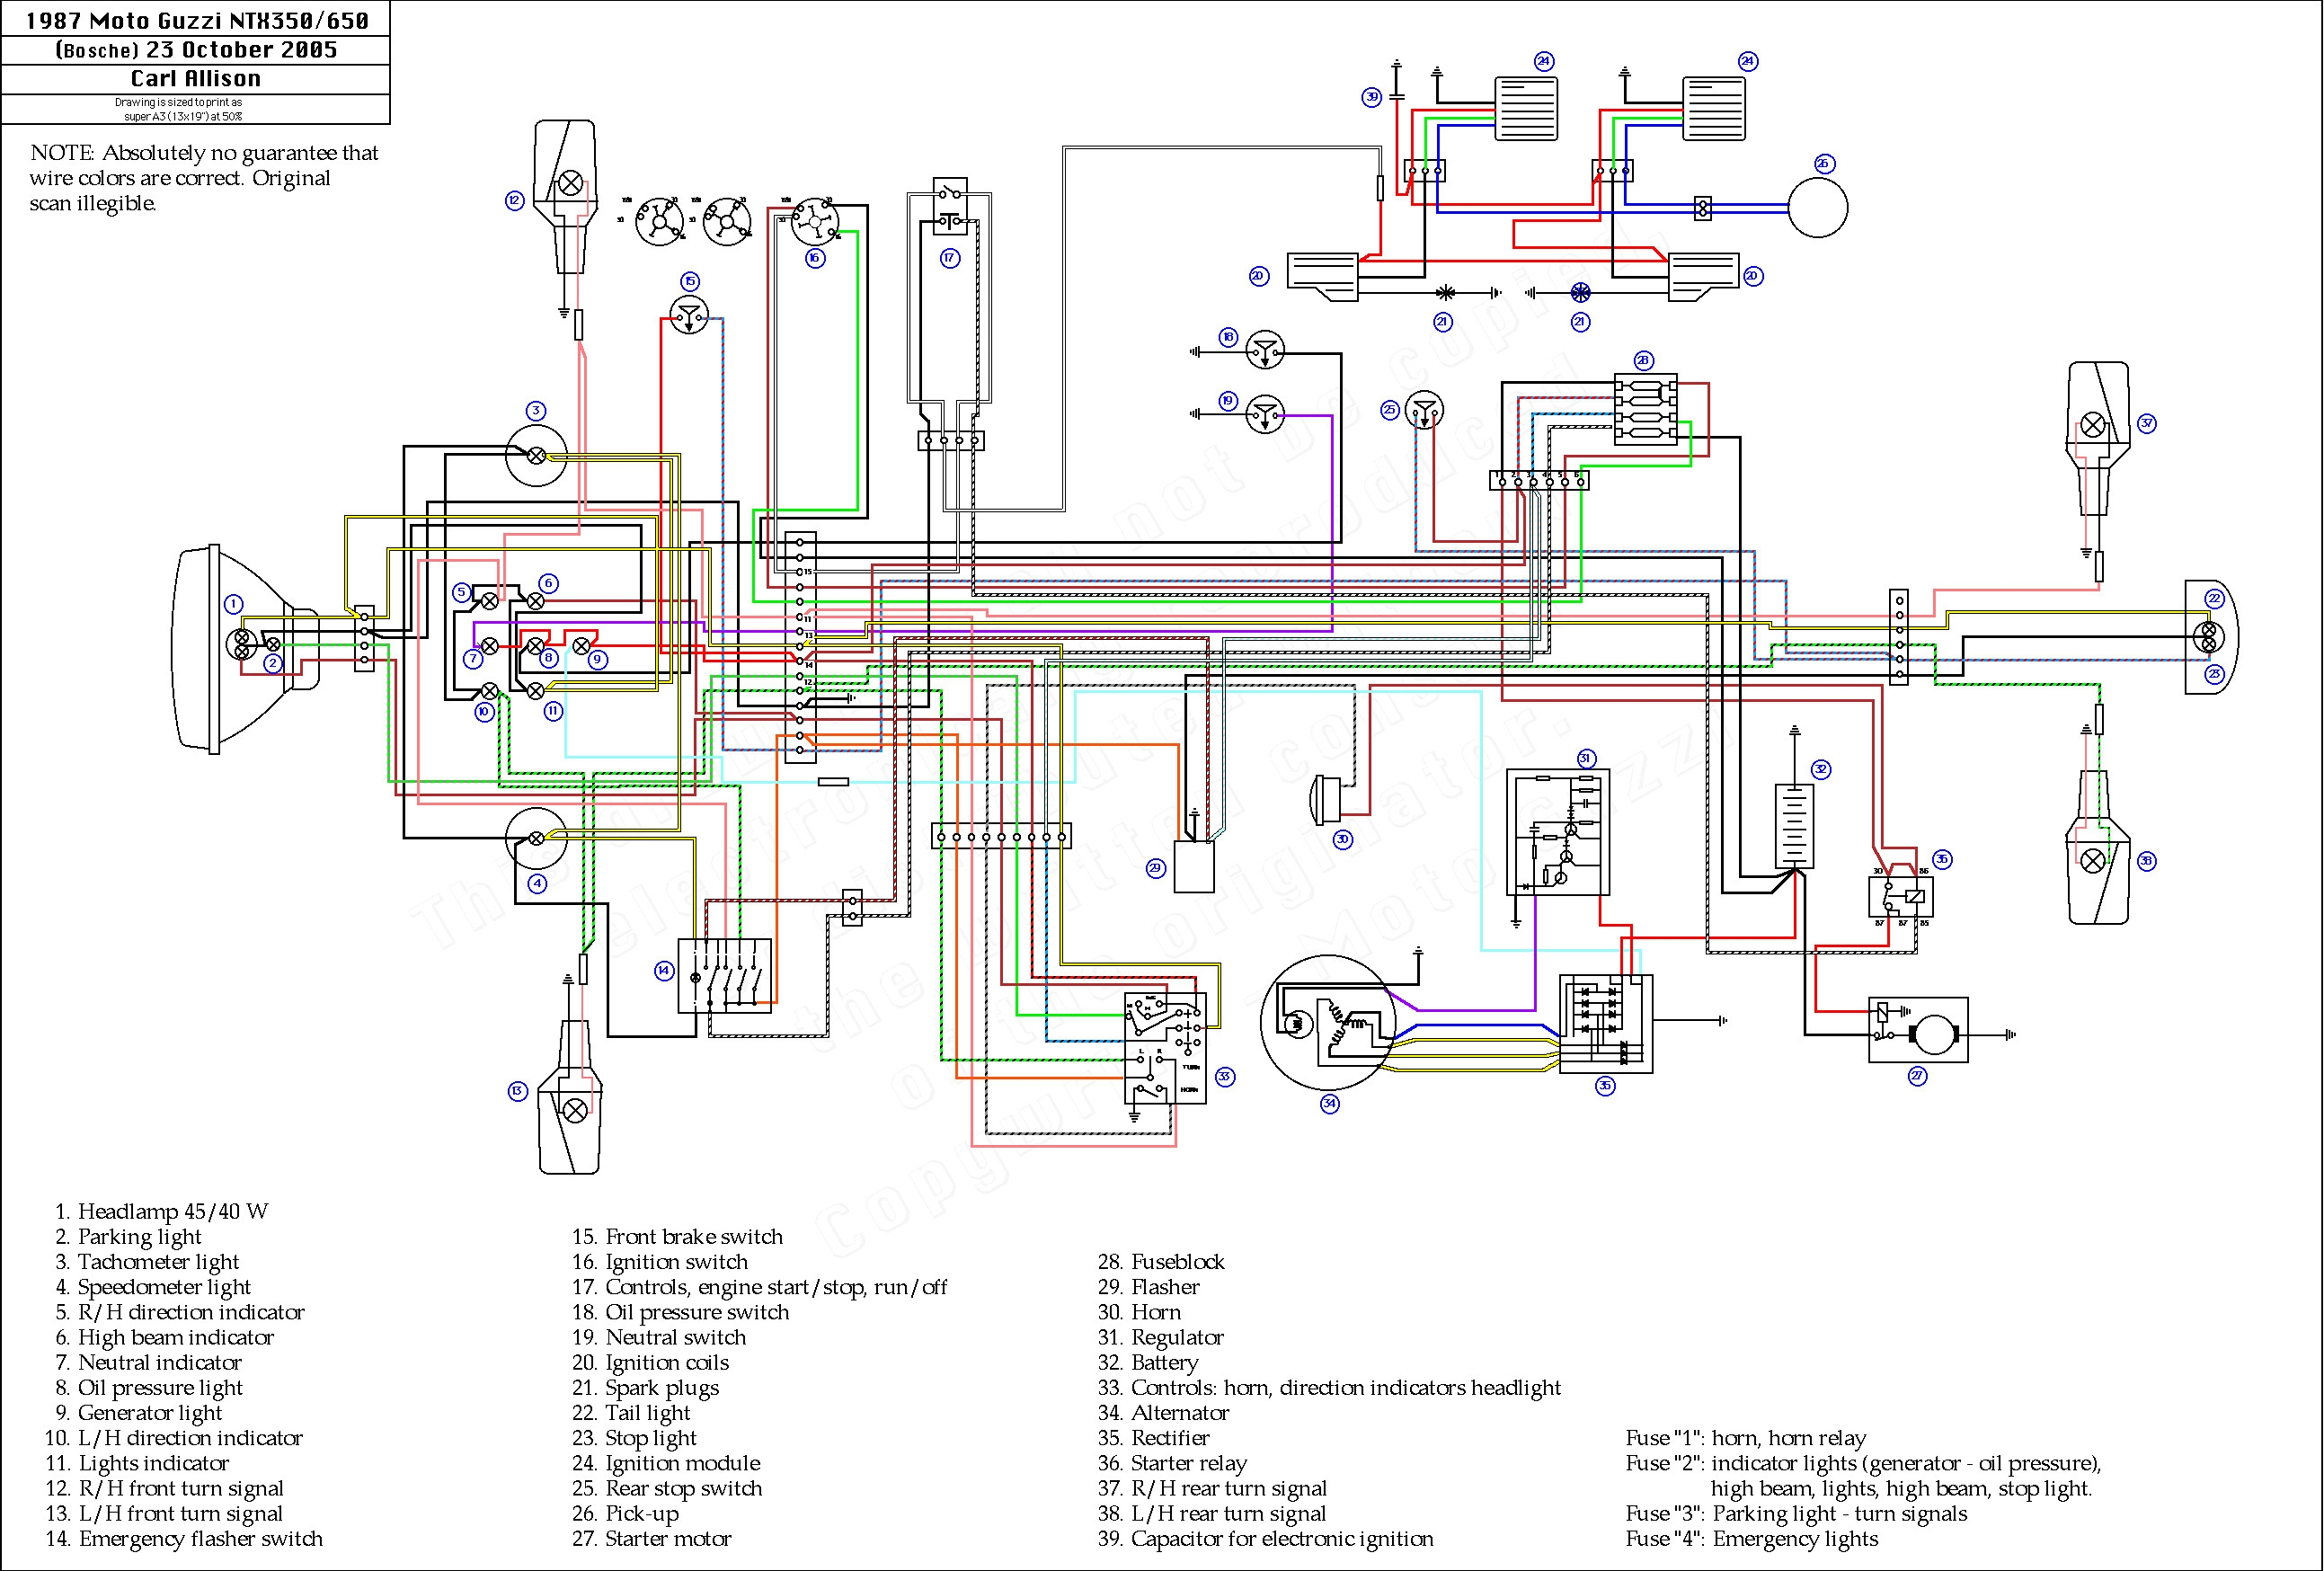 ingersoll rand 2475n7 5 wiring diagram free wiring diagram ingersoll rand air compressor